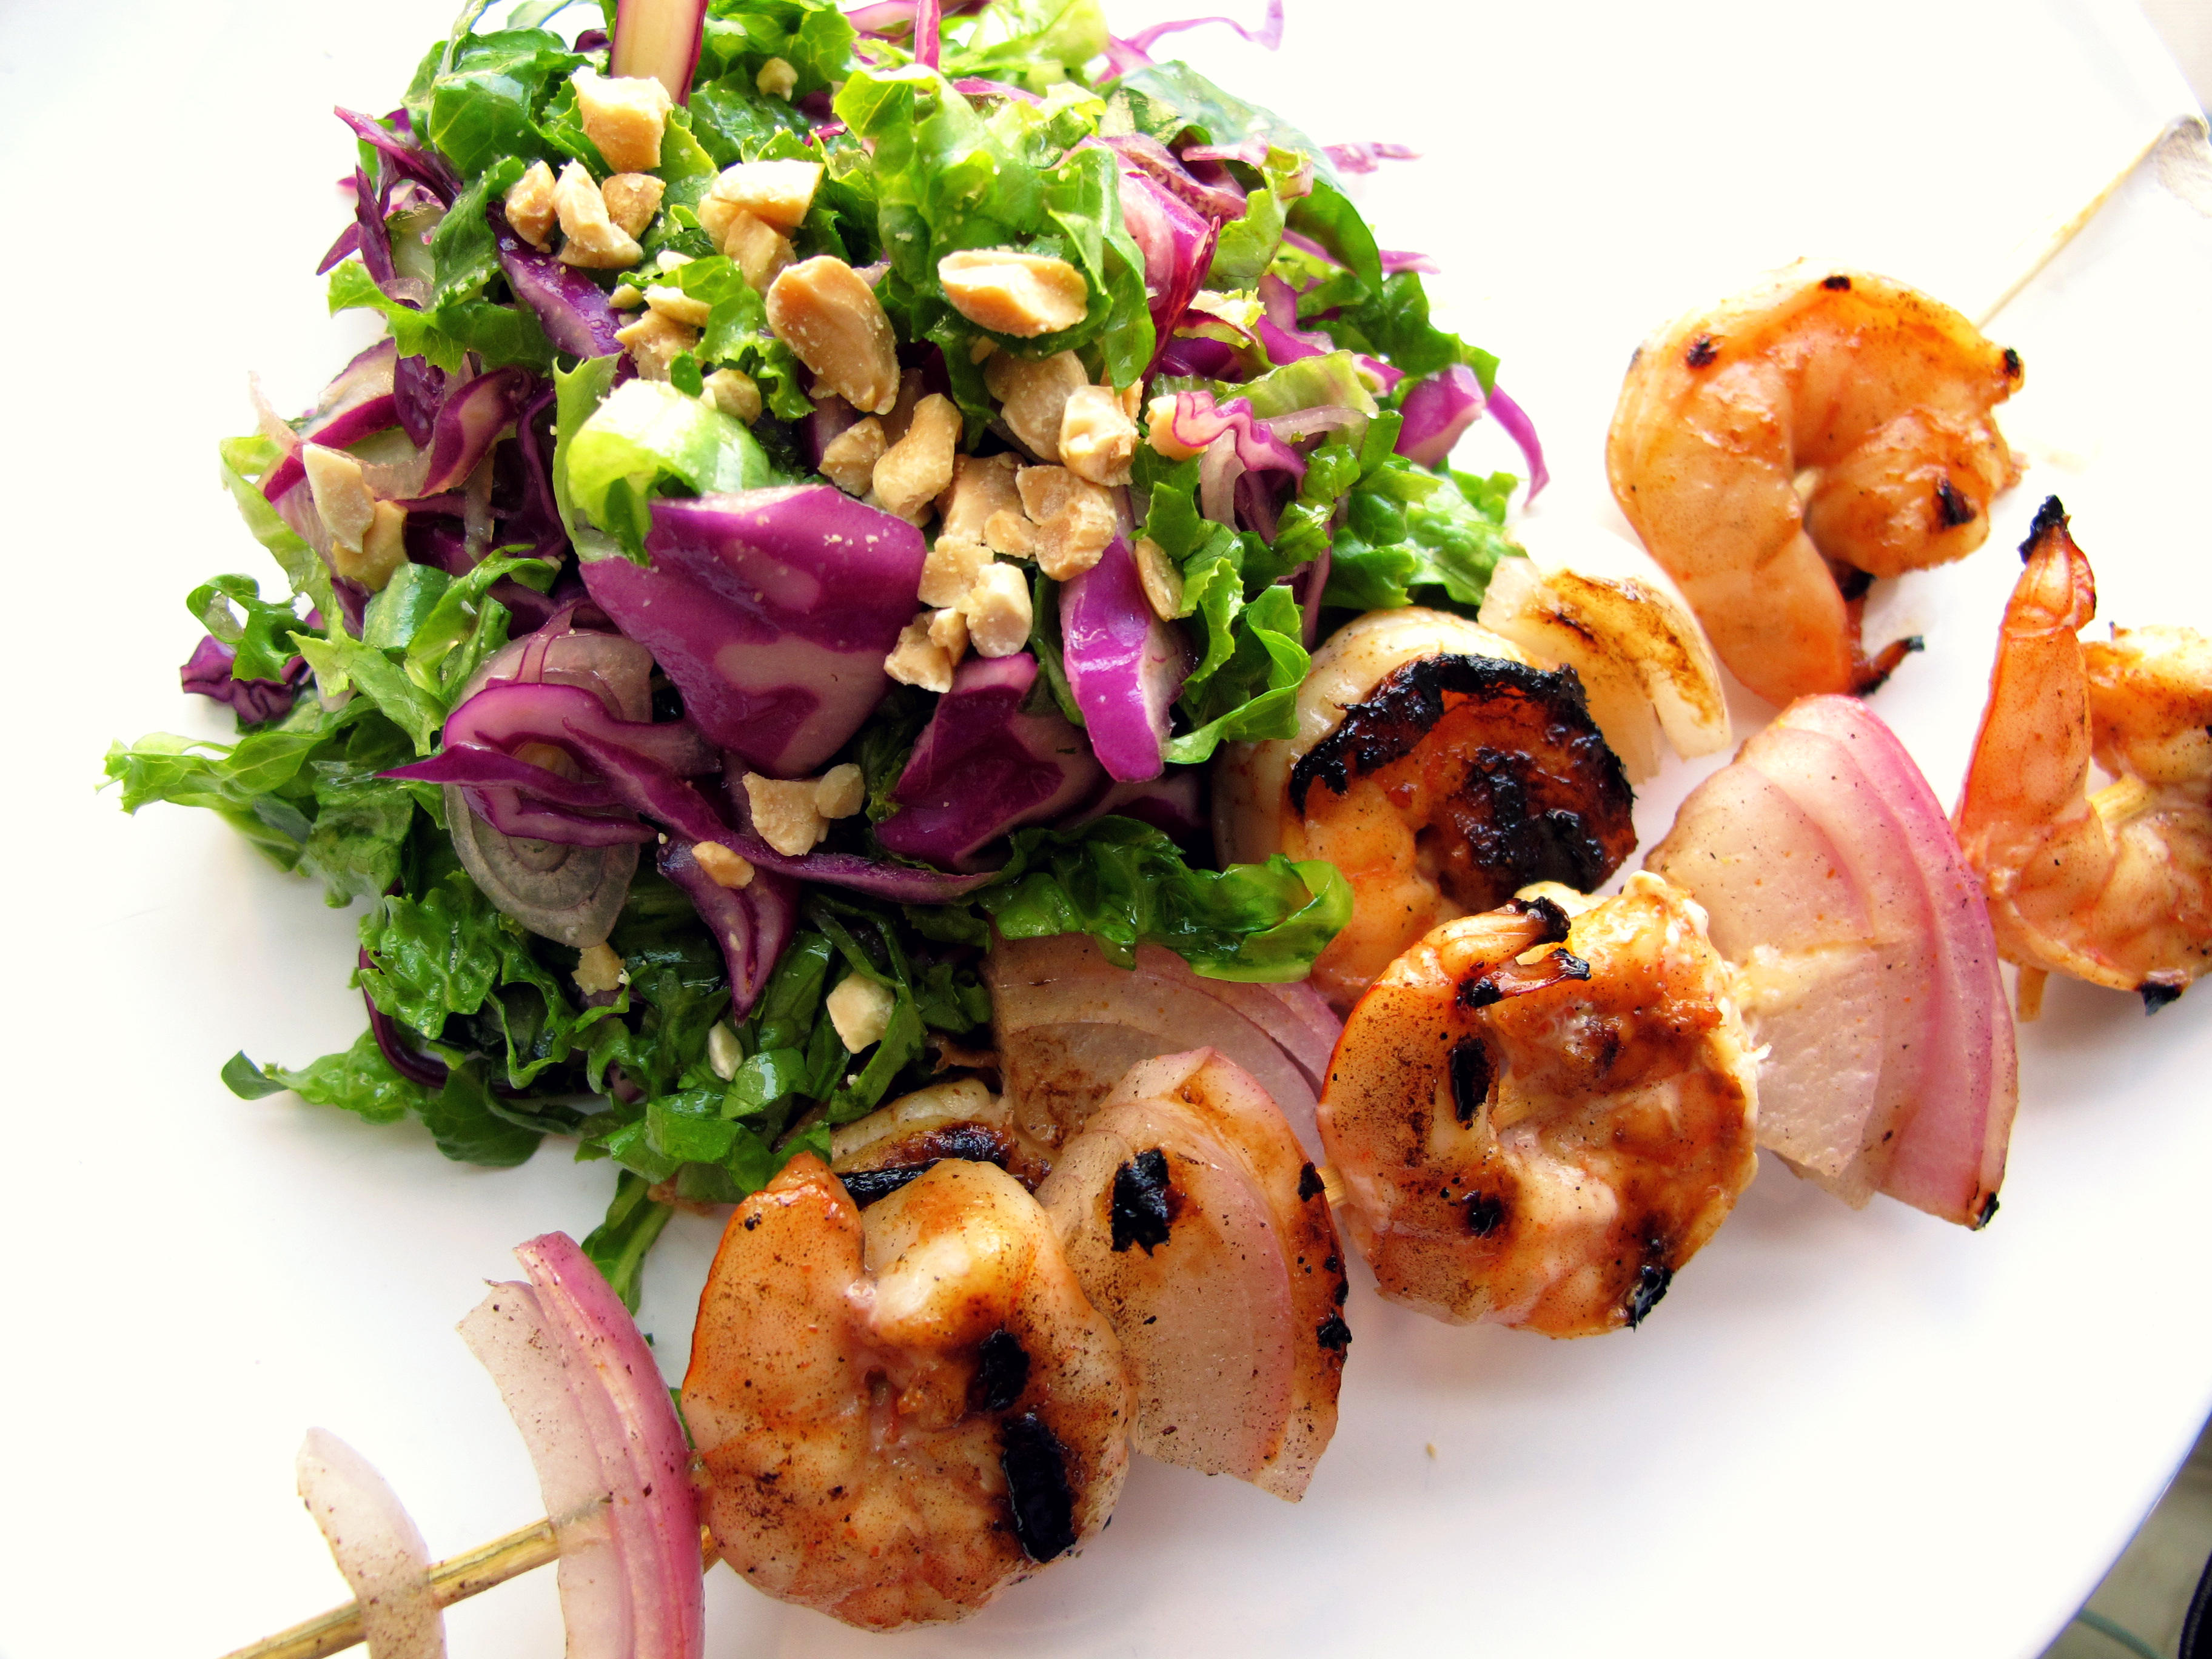 Grilled Maple Syrup Shrimp with Cabbage Salad - Pantry No. 7